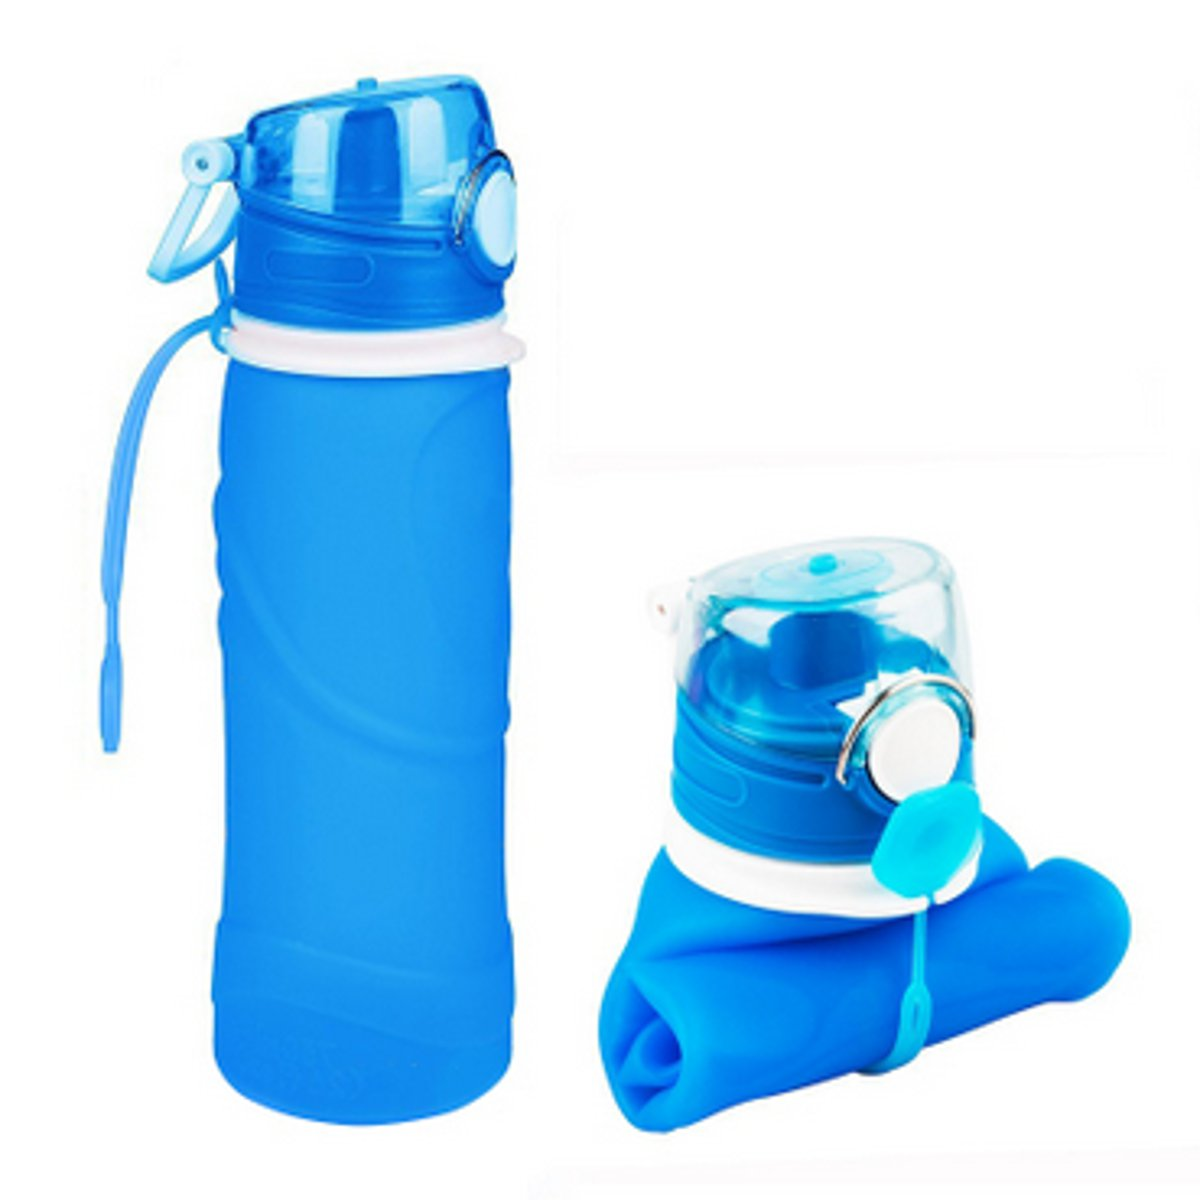 Moaere Collapsible Silicone Water Bottles Sports Camping Canteen 750ml  Easy To Clean And Store